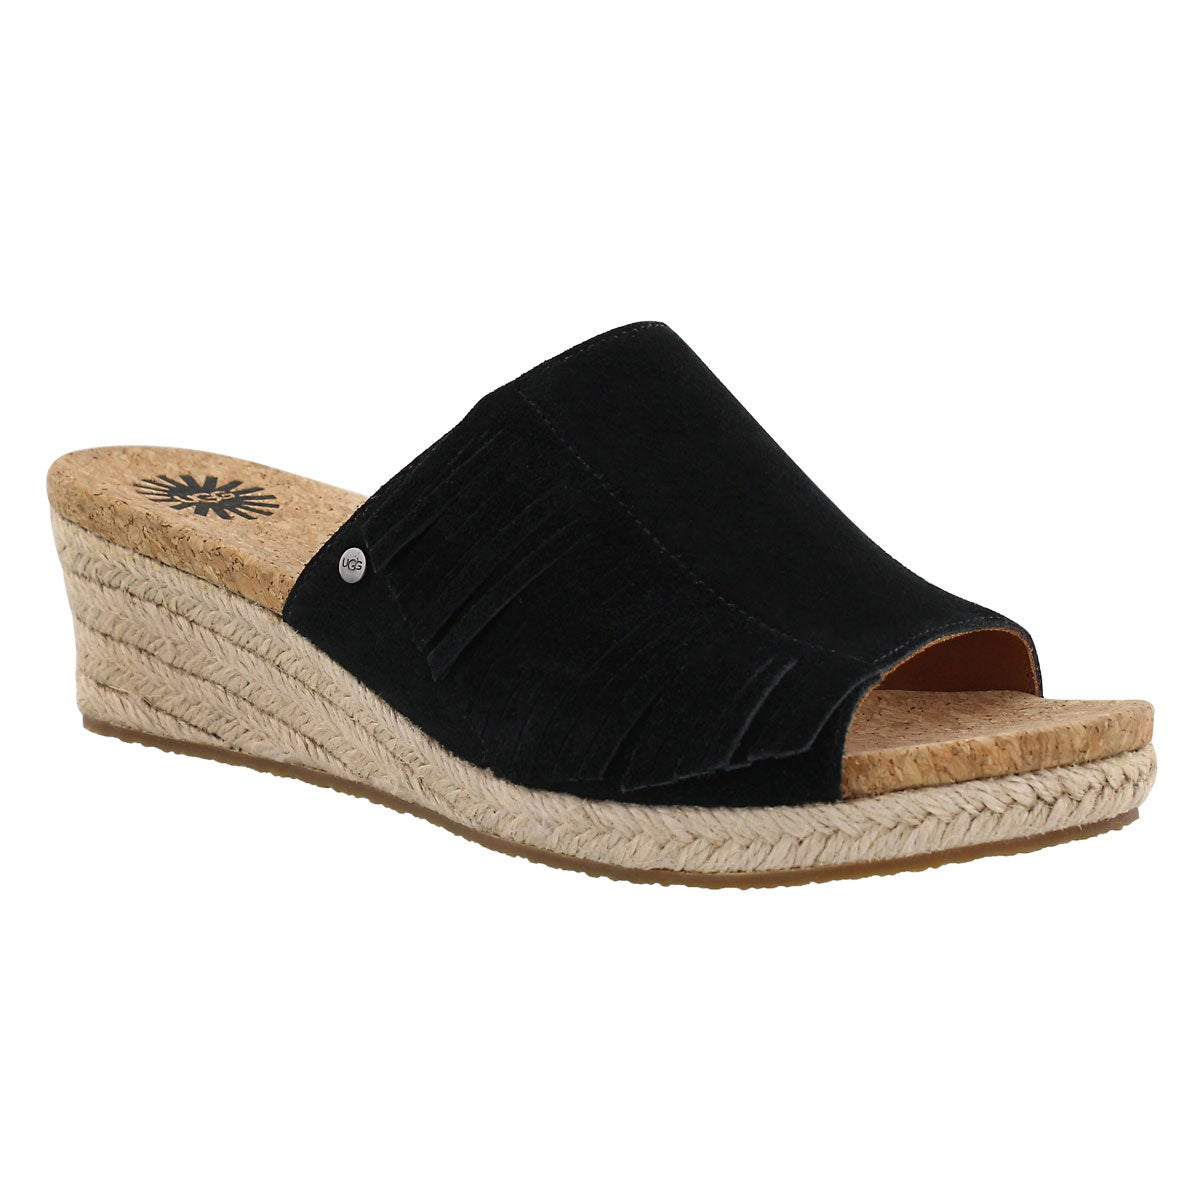 Lds Danes black wedge sandal